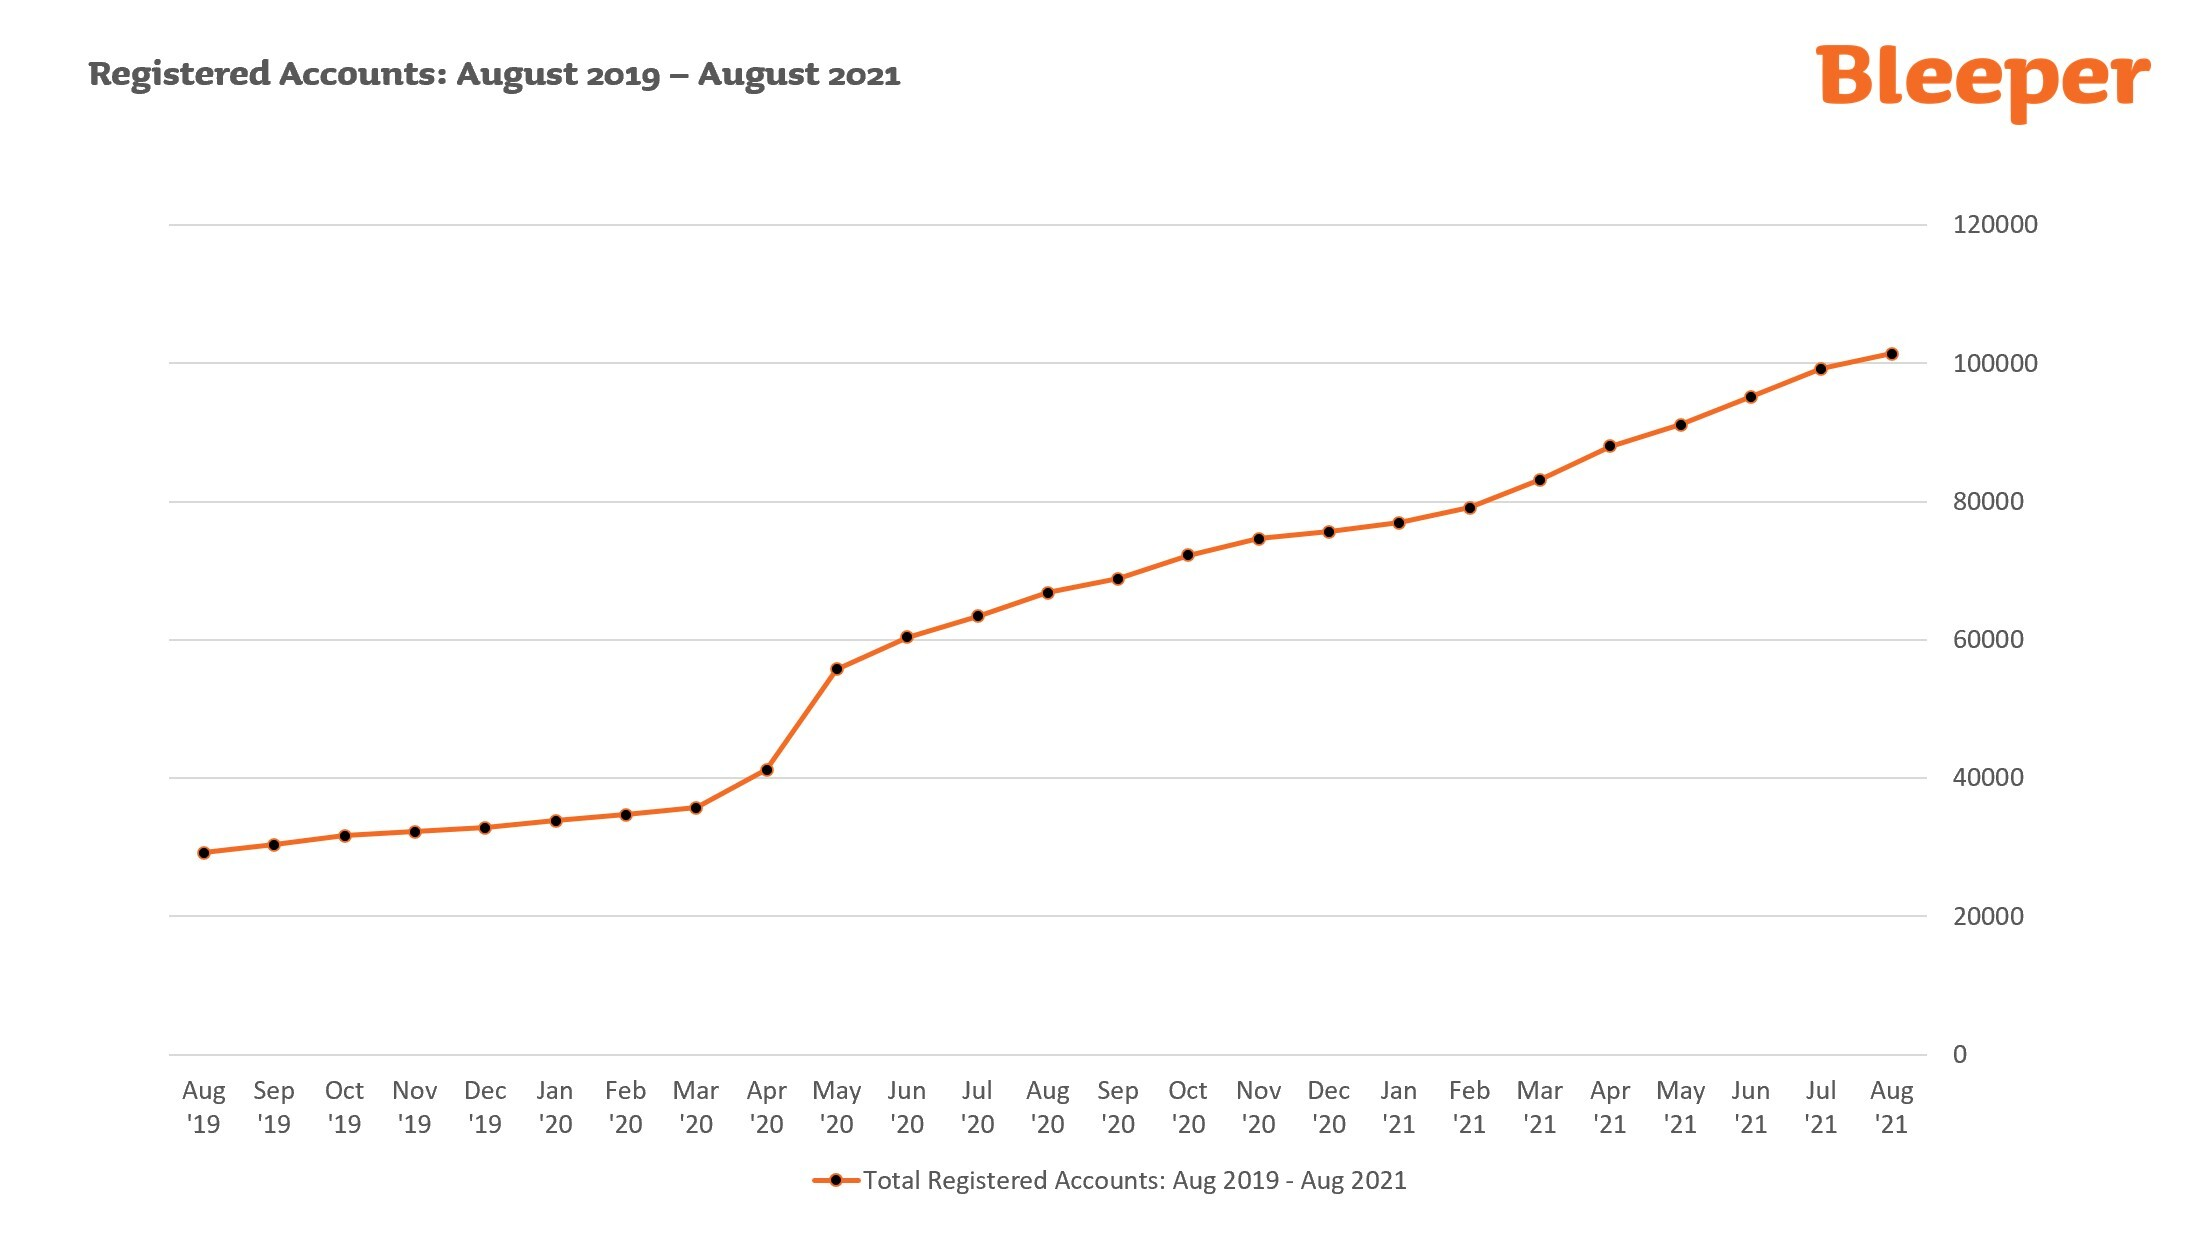 Graph showing growth in Bleeper registered accounts from August 2019 to August 2021.